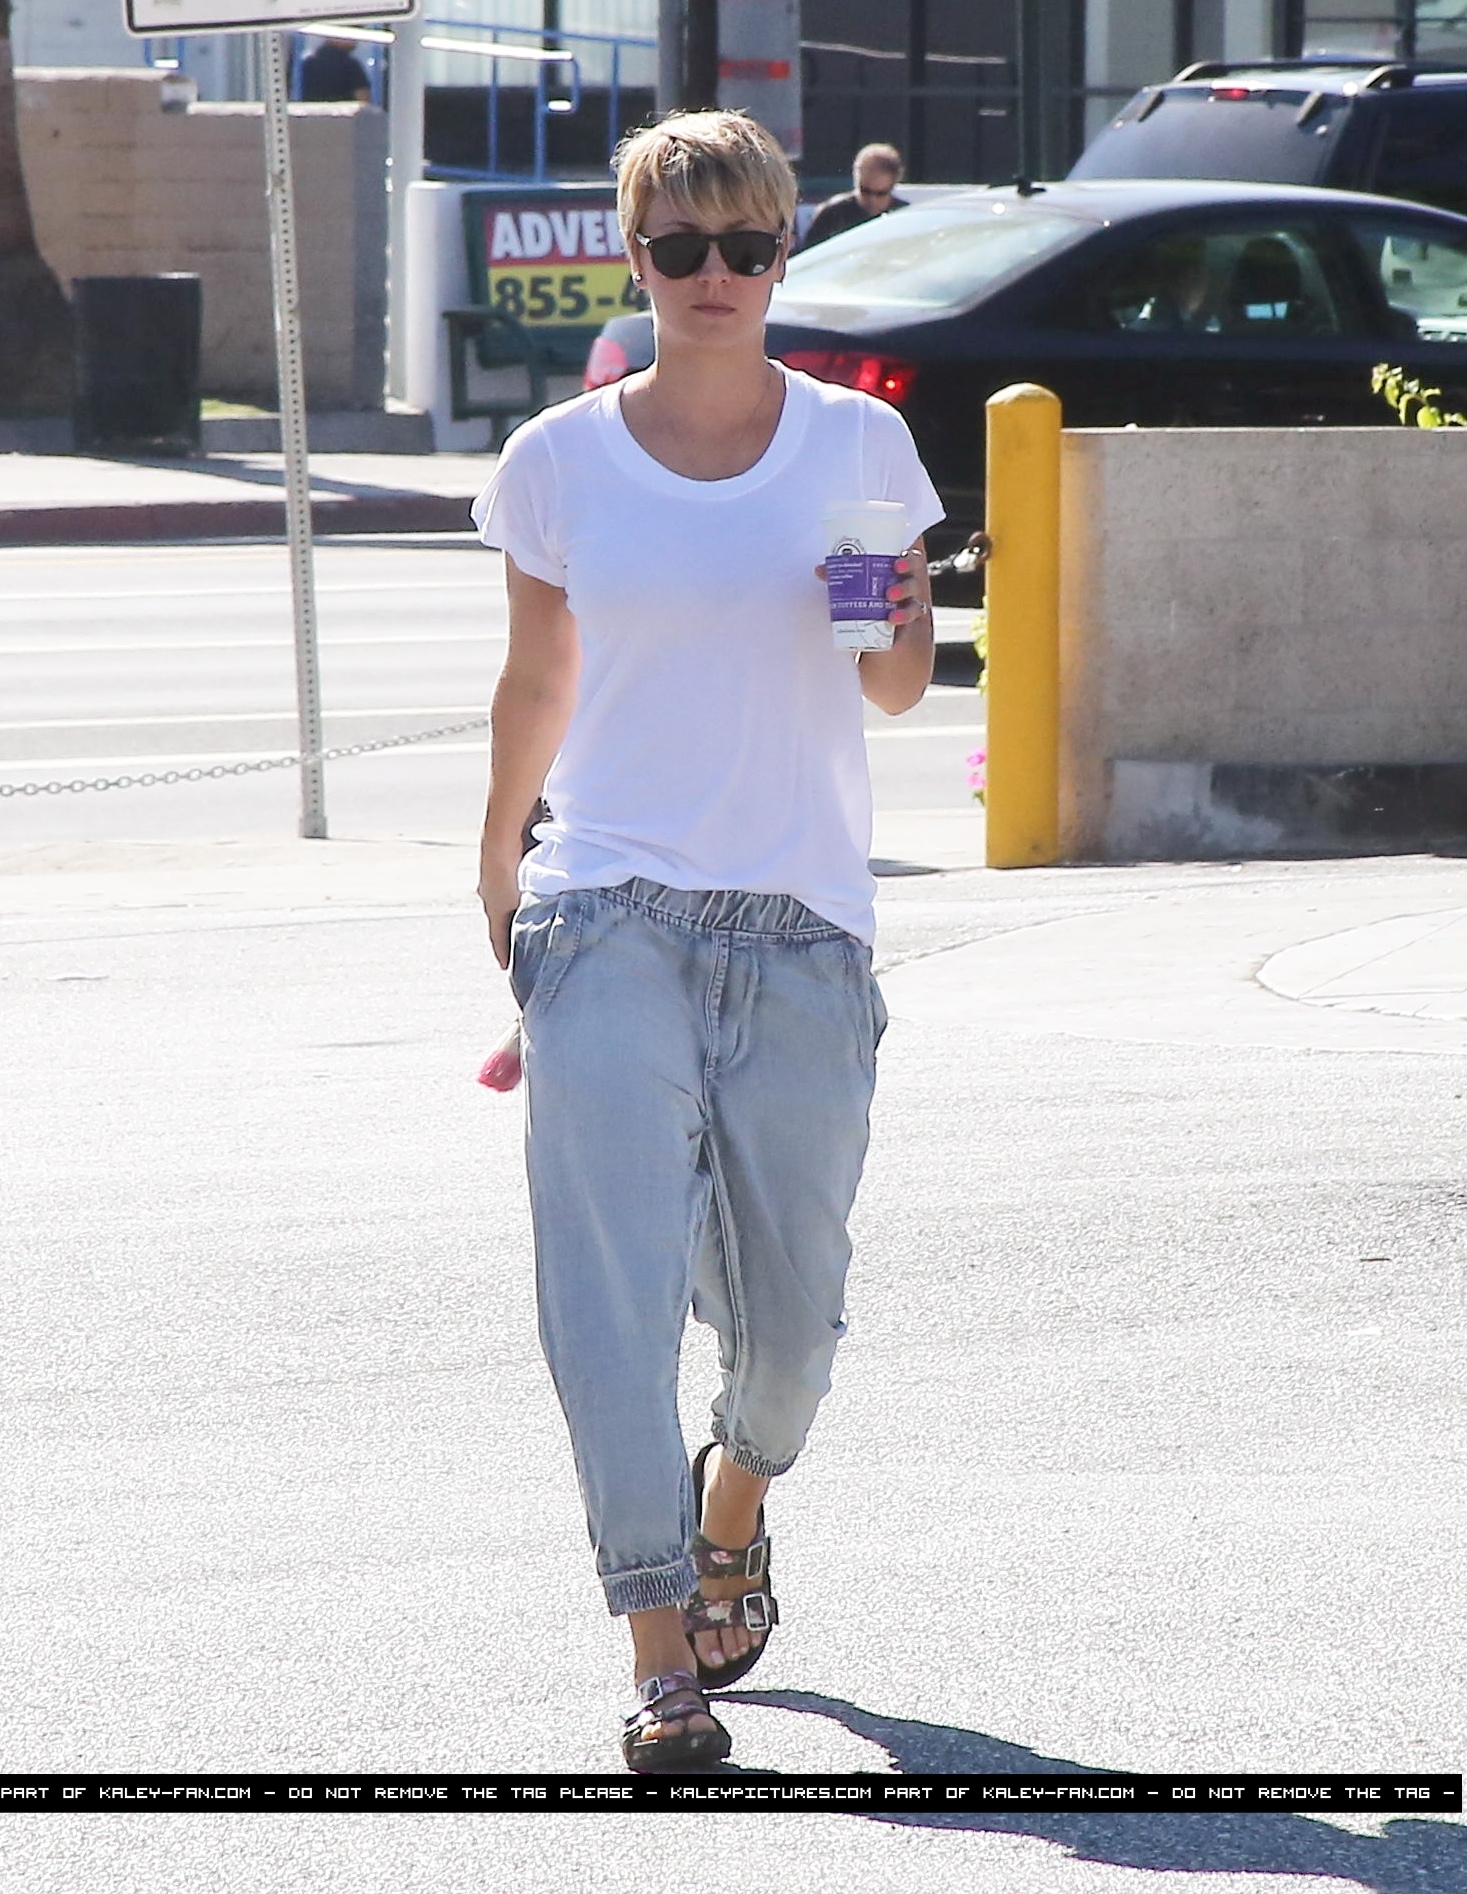 Fashion Kaley Cuoco Candids Pick Your Fav Actresses Fanpop